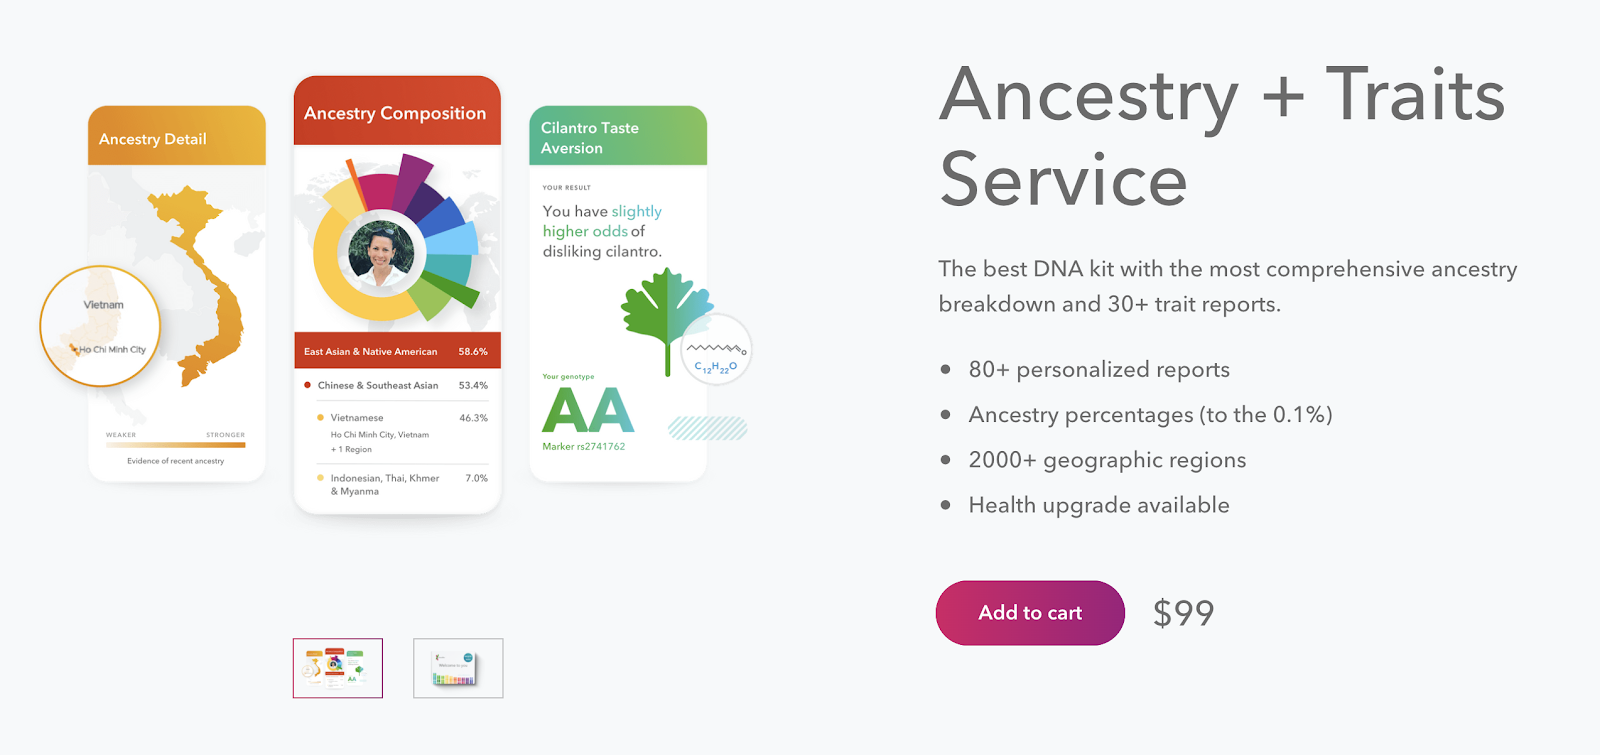 23 and Me Ancestry Product Description Example